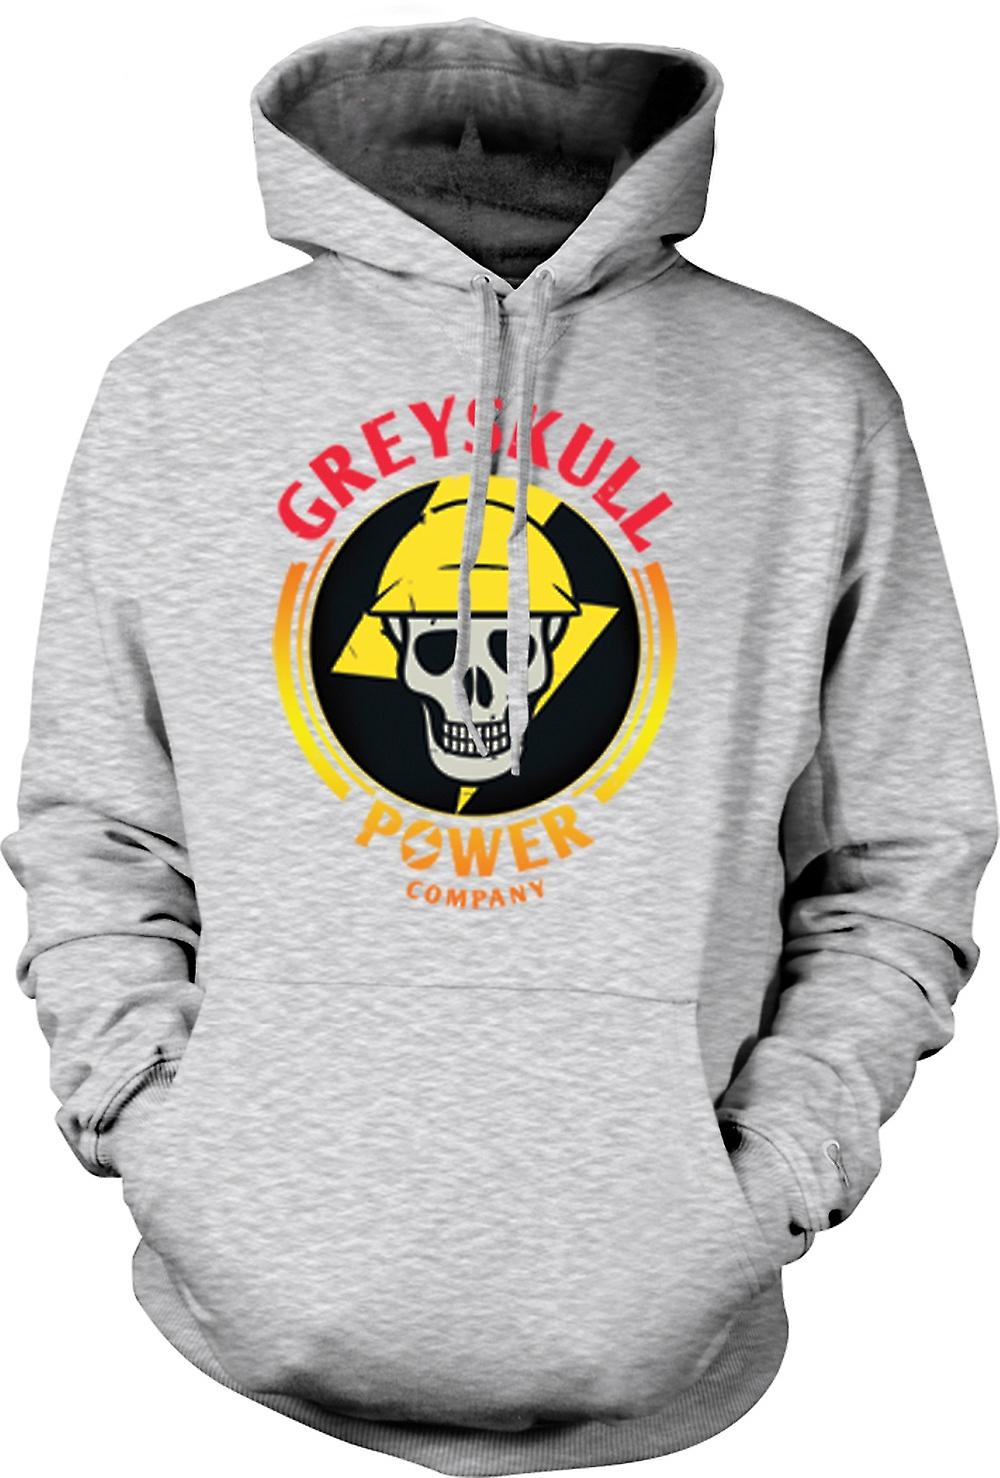 Mens Hoodie - Greyskull Power Company He-Man I have the Power